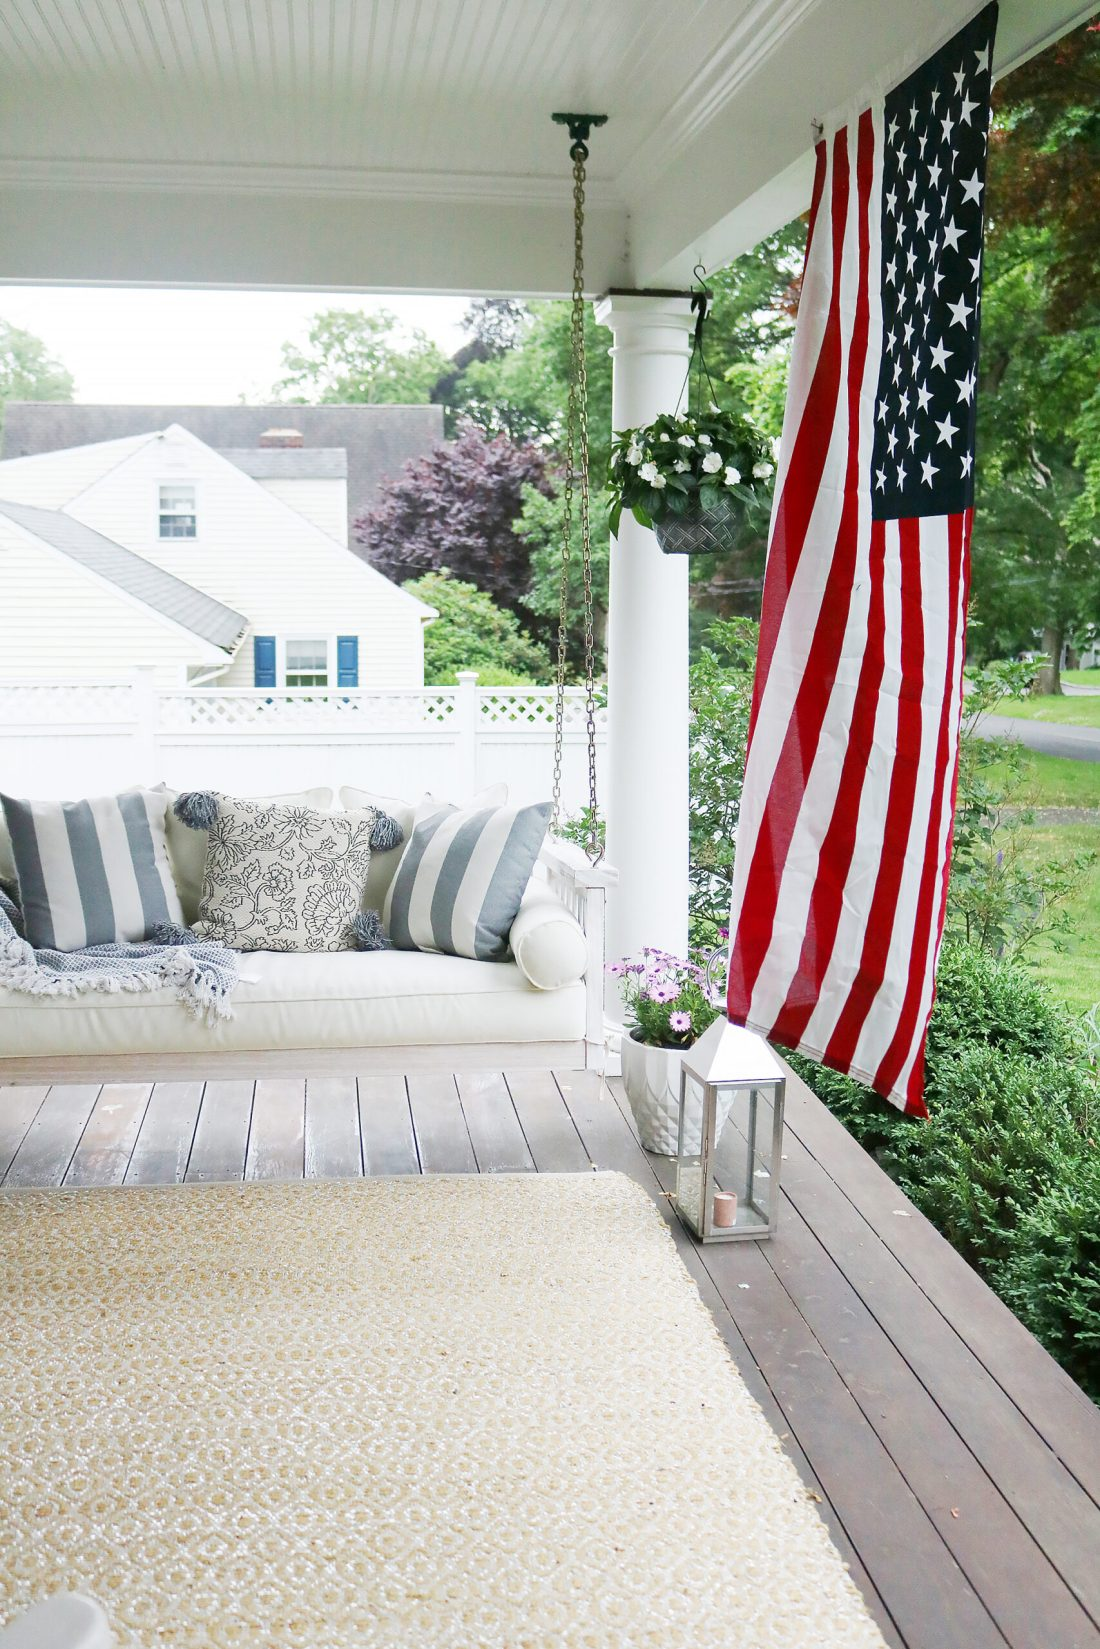 A beautiful home exterior can make or break curb appeal! Sharing 7 easy and simple curb appeal ideas. American flag by porch swing || Darling Darleen Top CT Lifestyle Blogger home exterior | outdoor charm | curb appeal ideas | home exterior ideas | white house with gray shutters | porch swing | shutter | new england charm | blue front door | #darlingdarleen